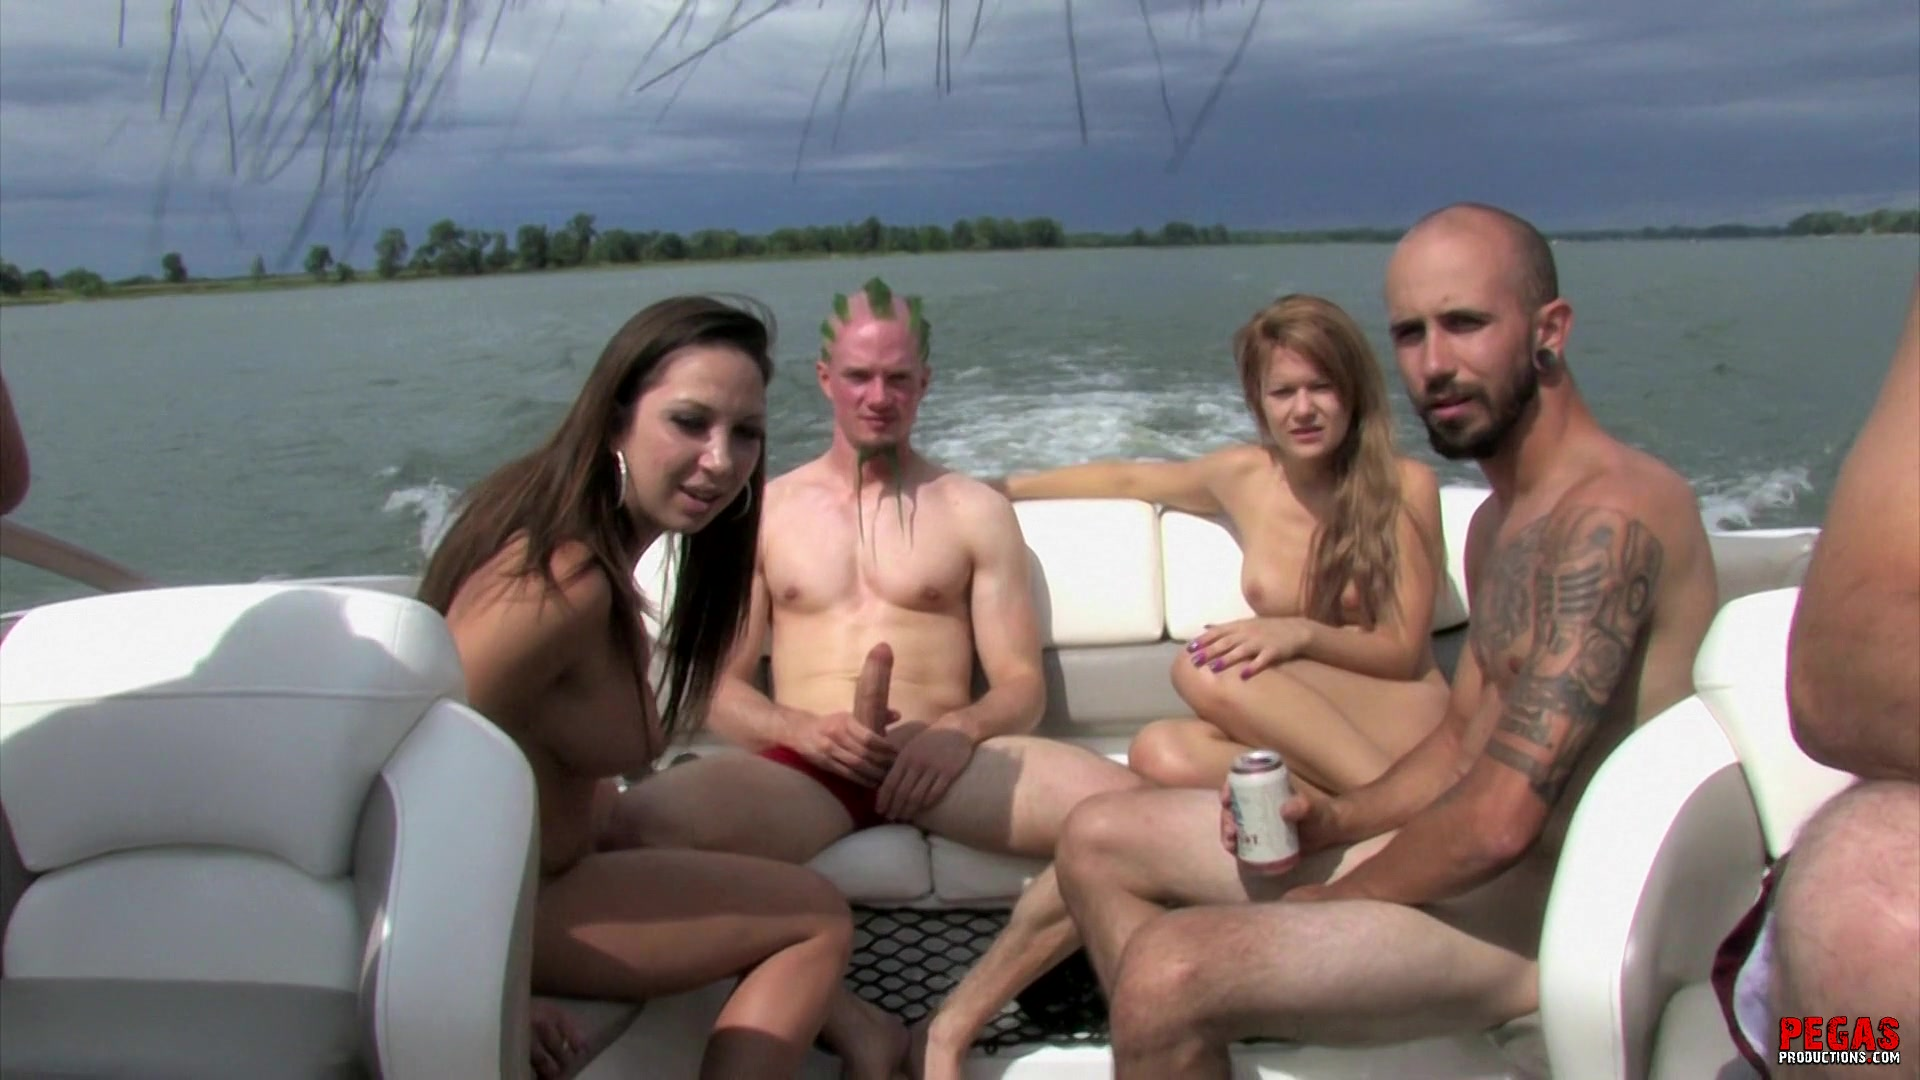 Orgy on a yacht porn brilliant idea